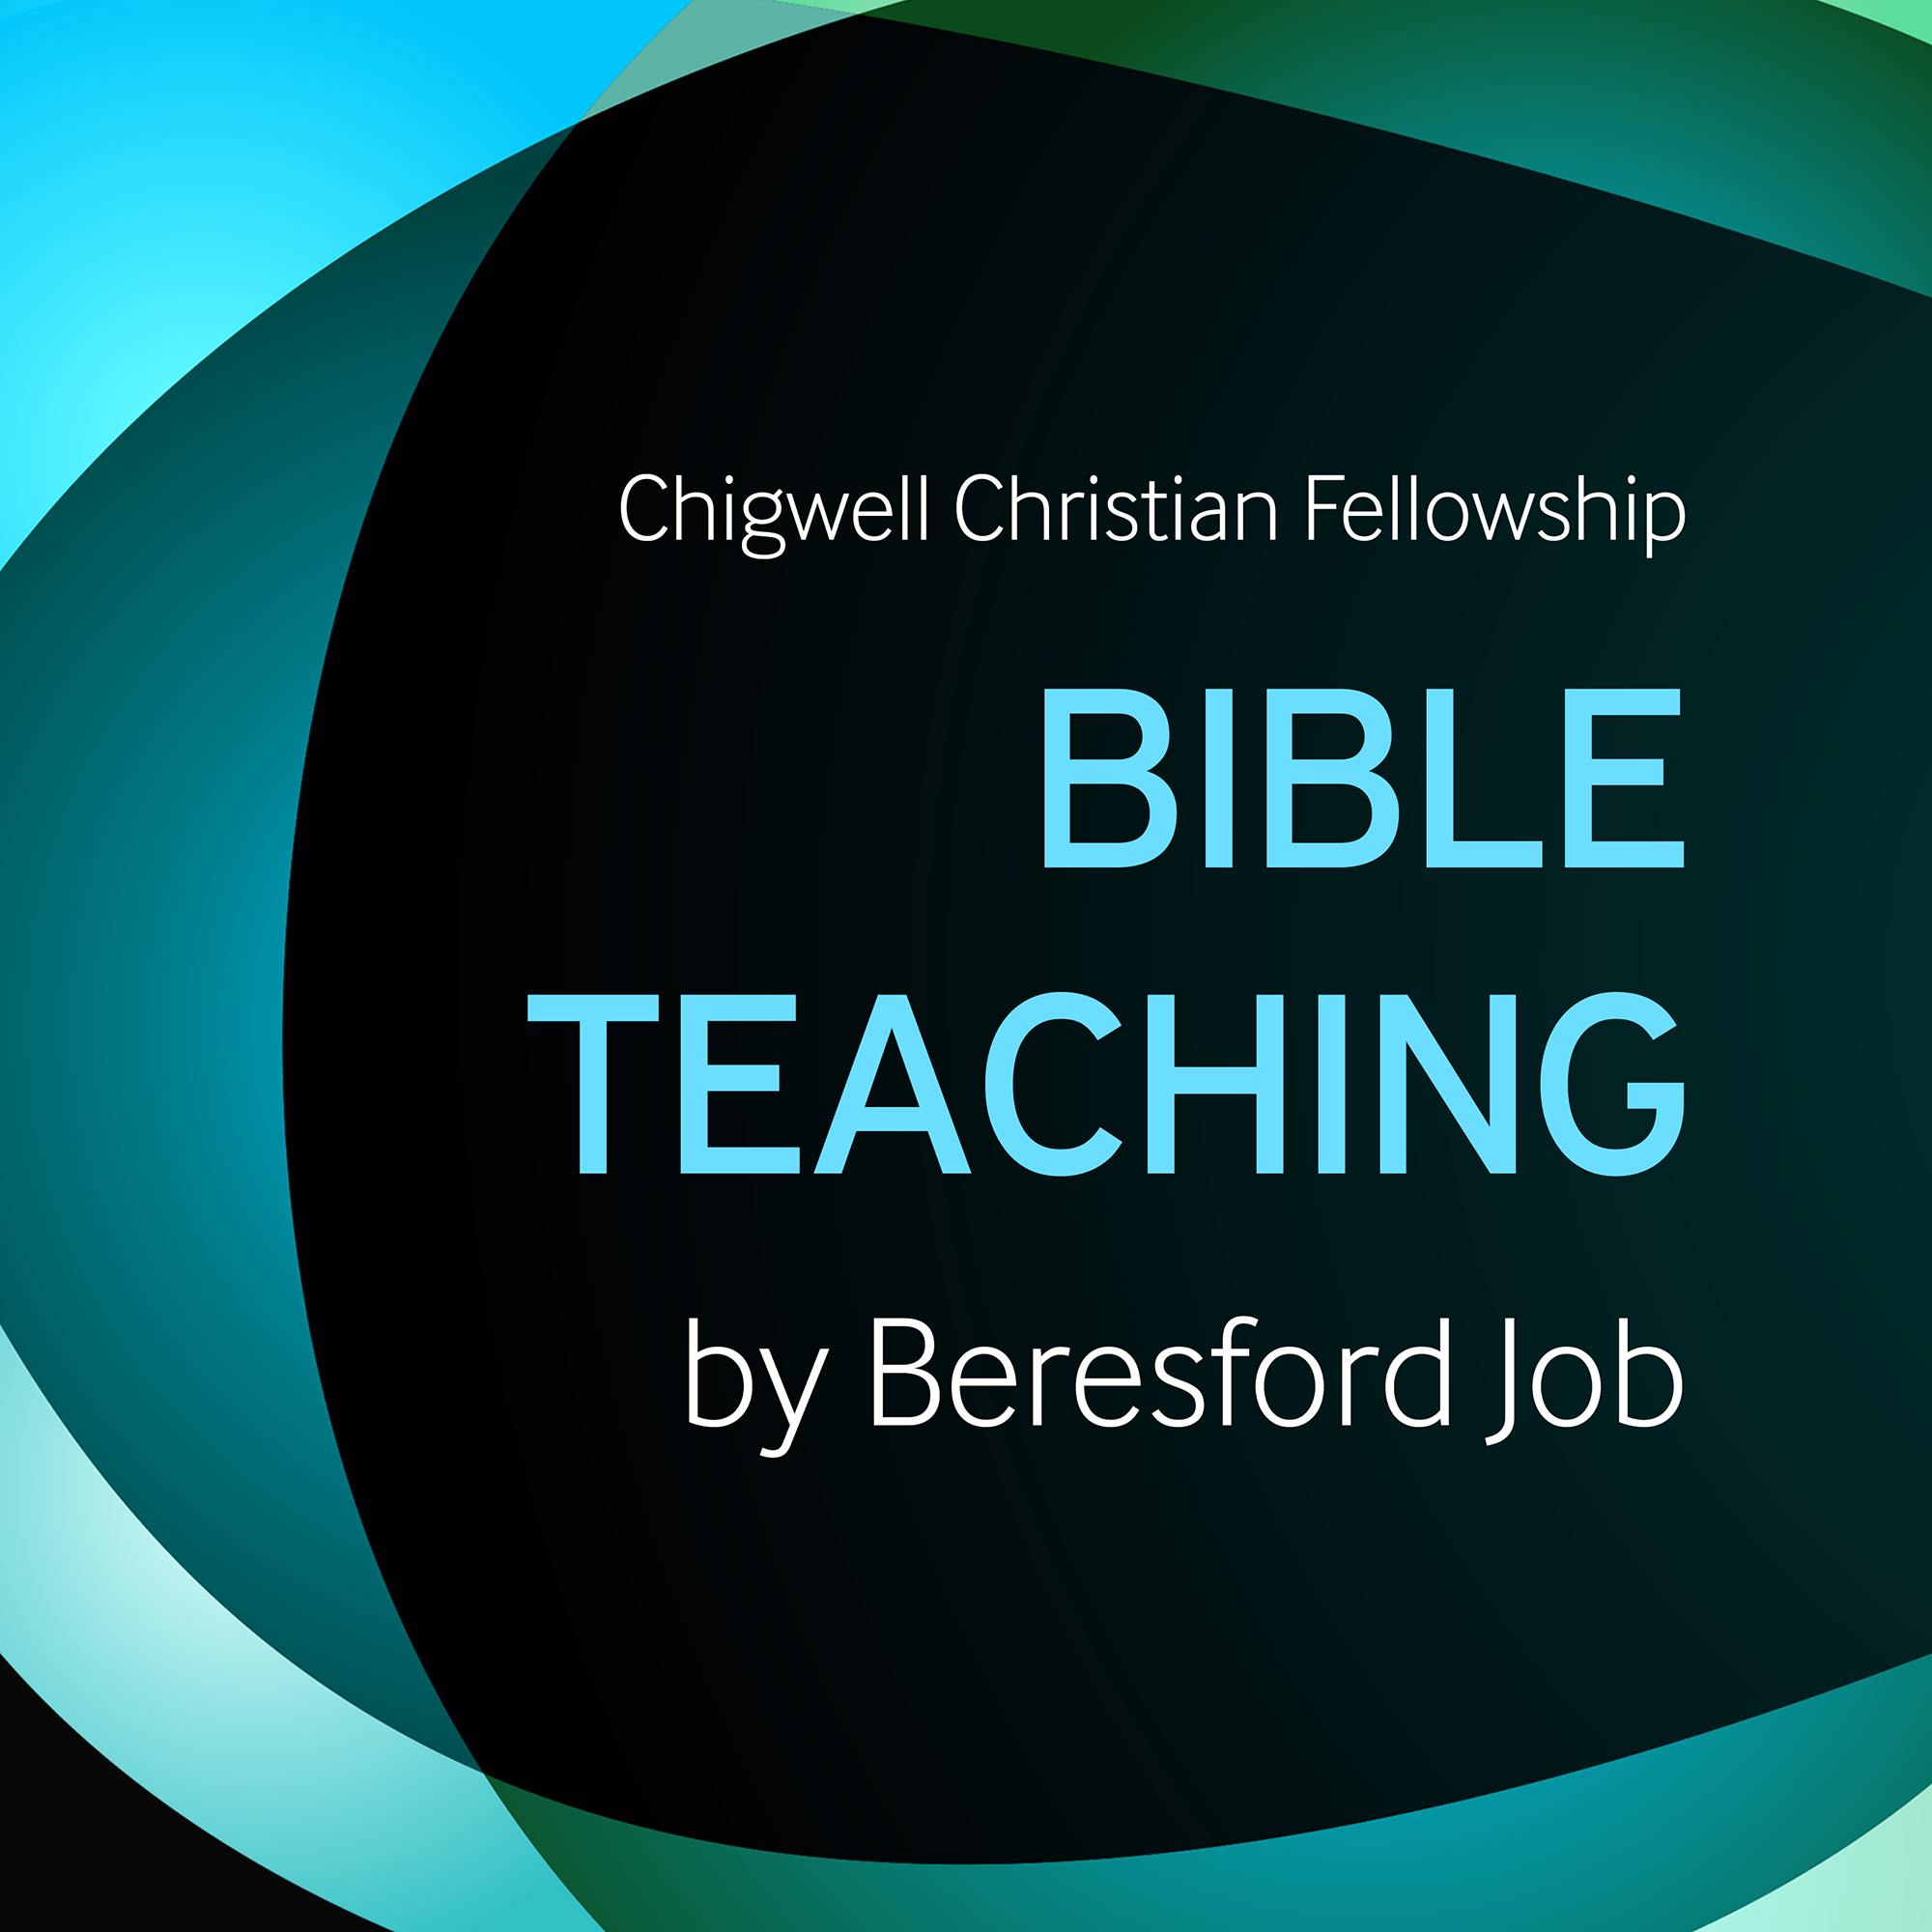 Chigwell Christian Fellowship Bible Teaching